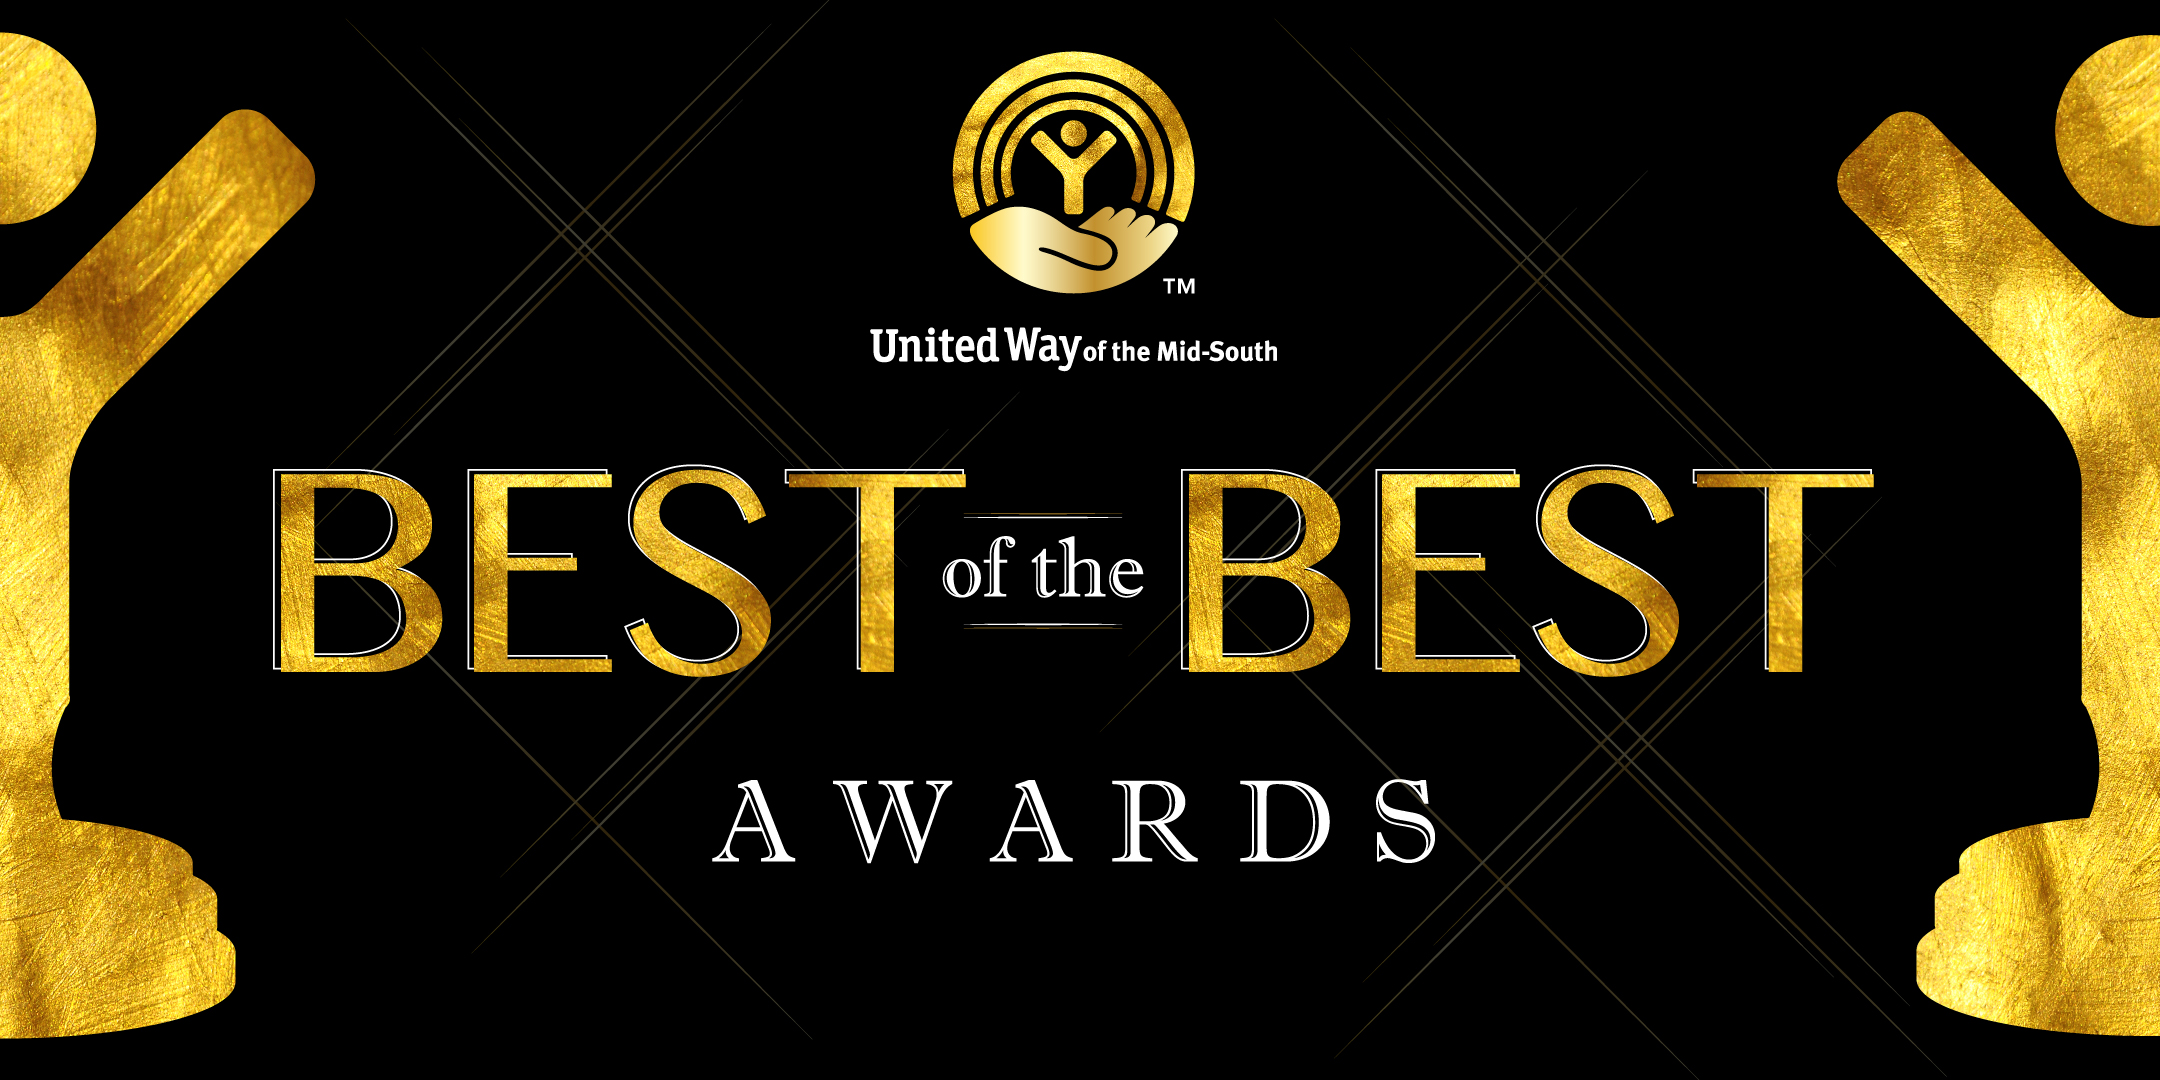 United Way Best of Best brand